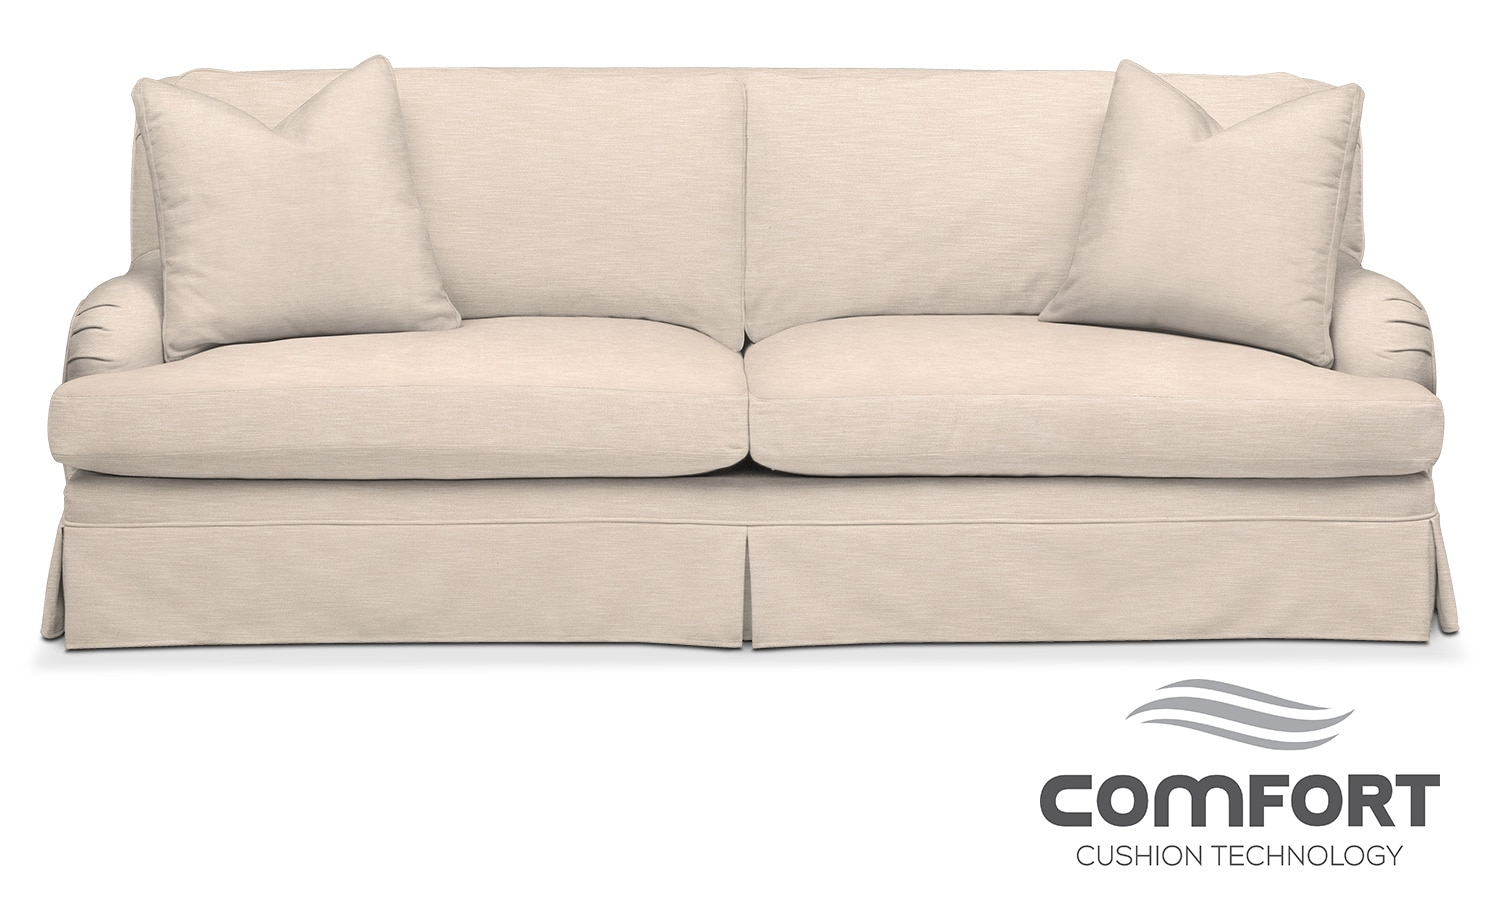 Living Room Furniture - Campbell Comfort Sofa - Dudley Buff